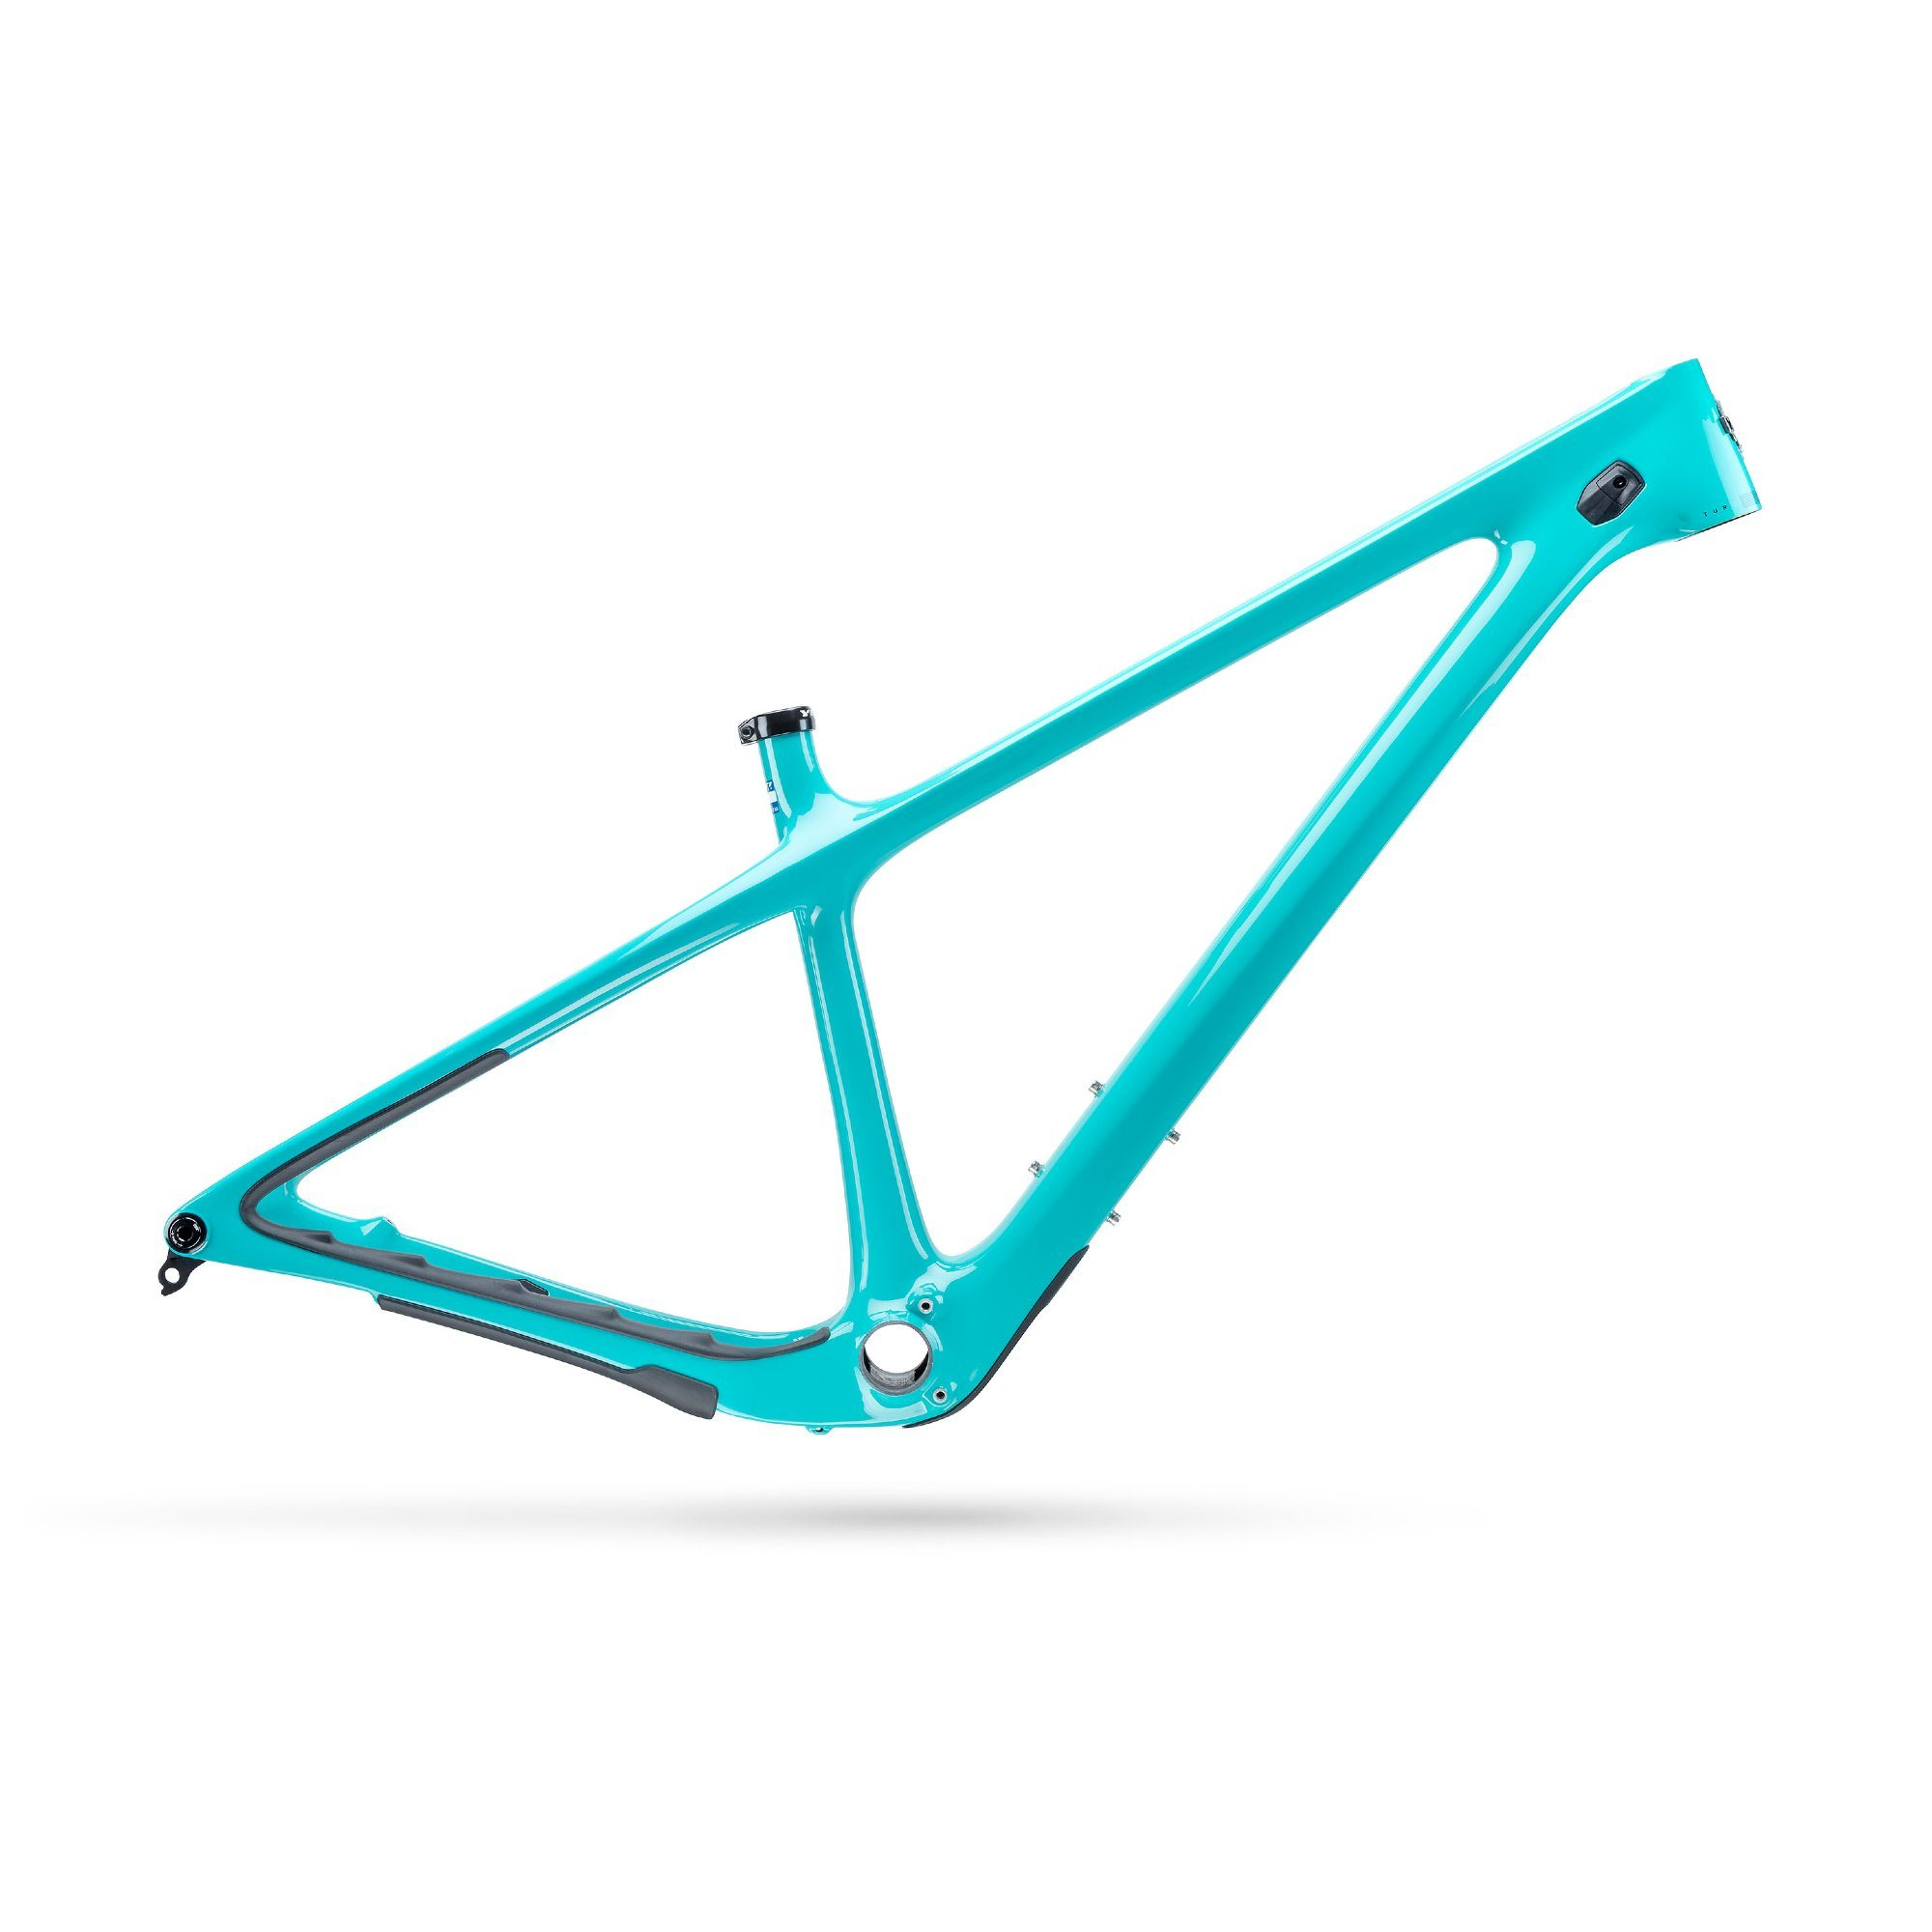 Yeti ARC T Series Frame 29er Carbon Mountain Bike 2021 Turquoise